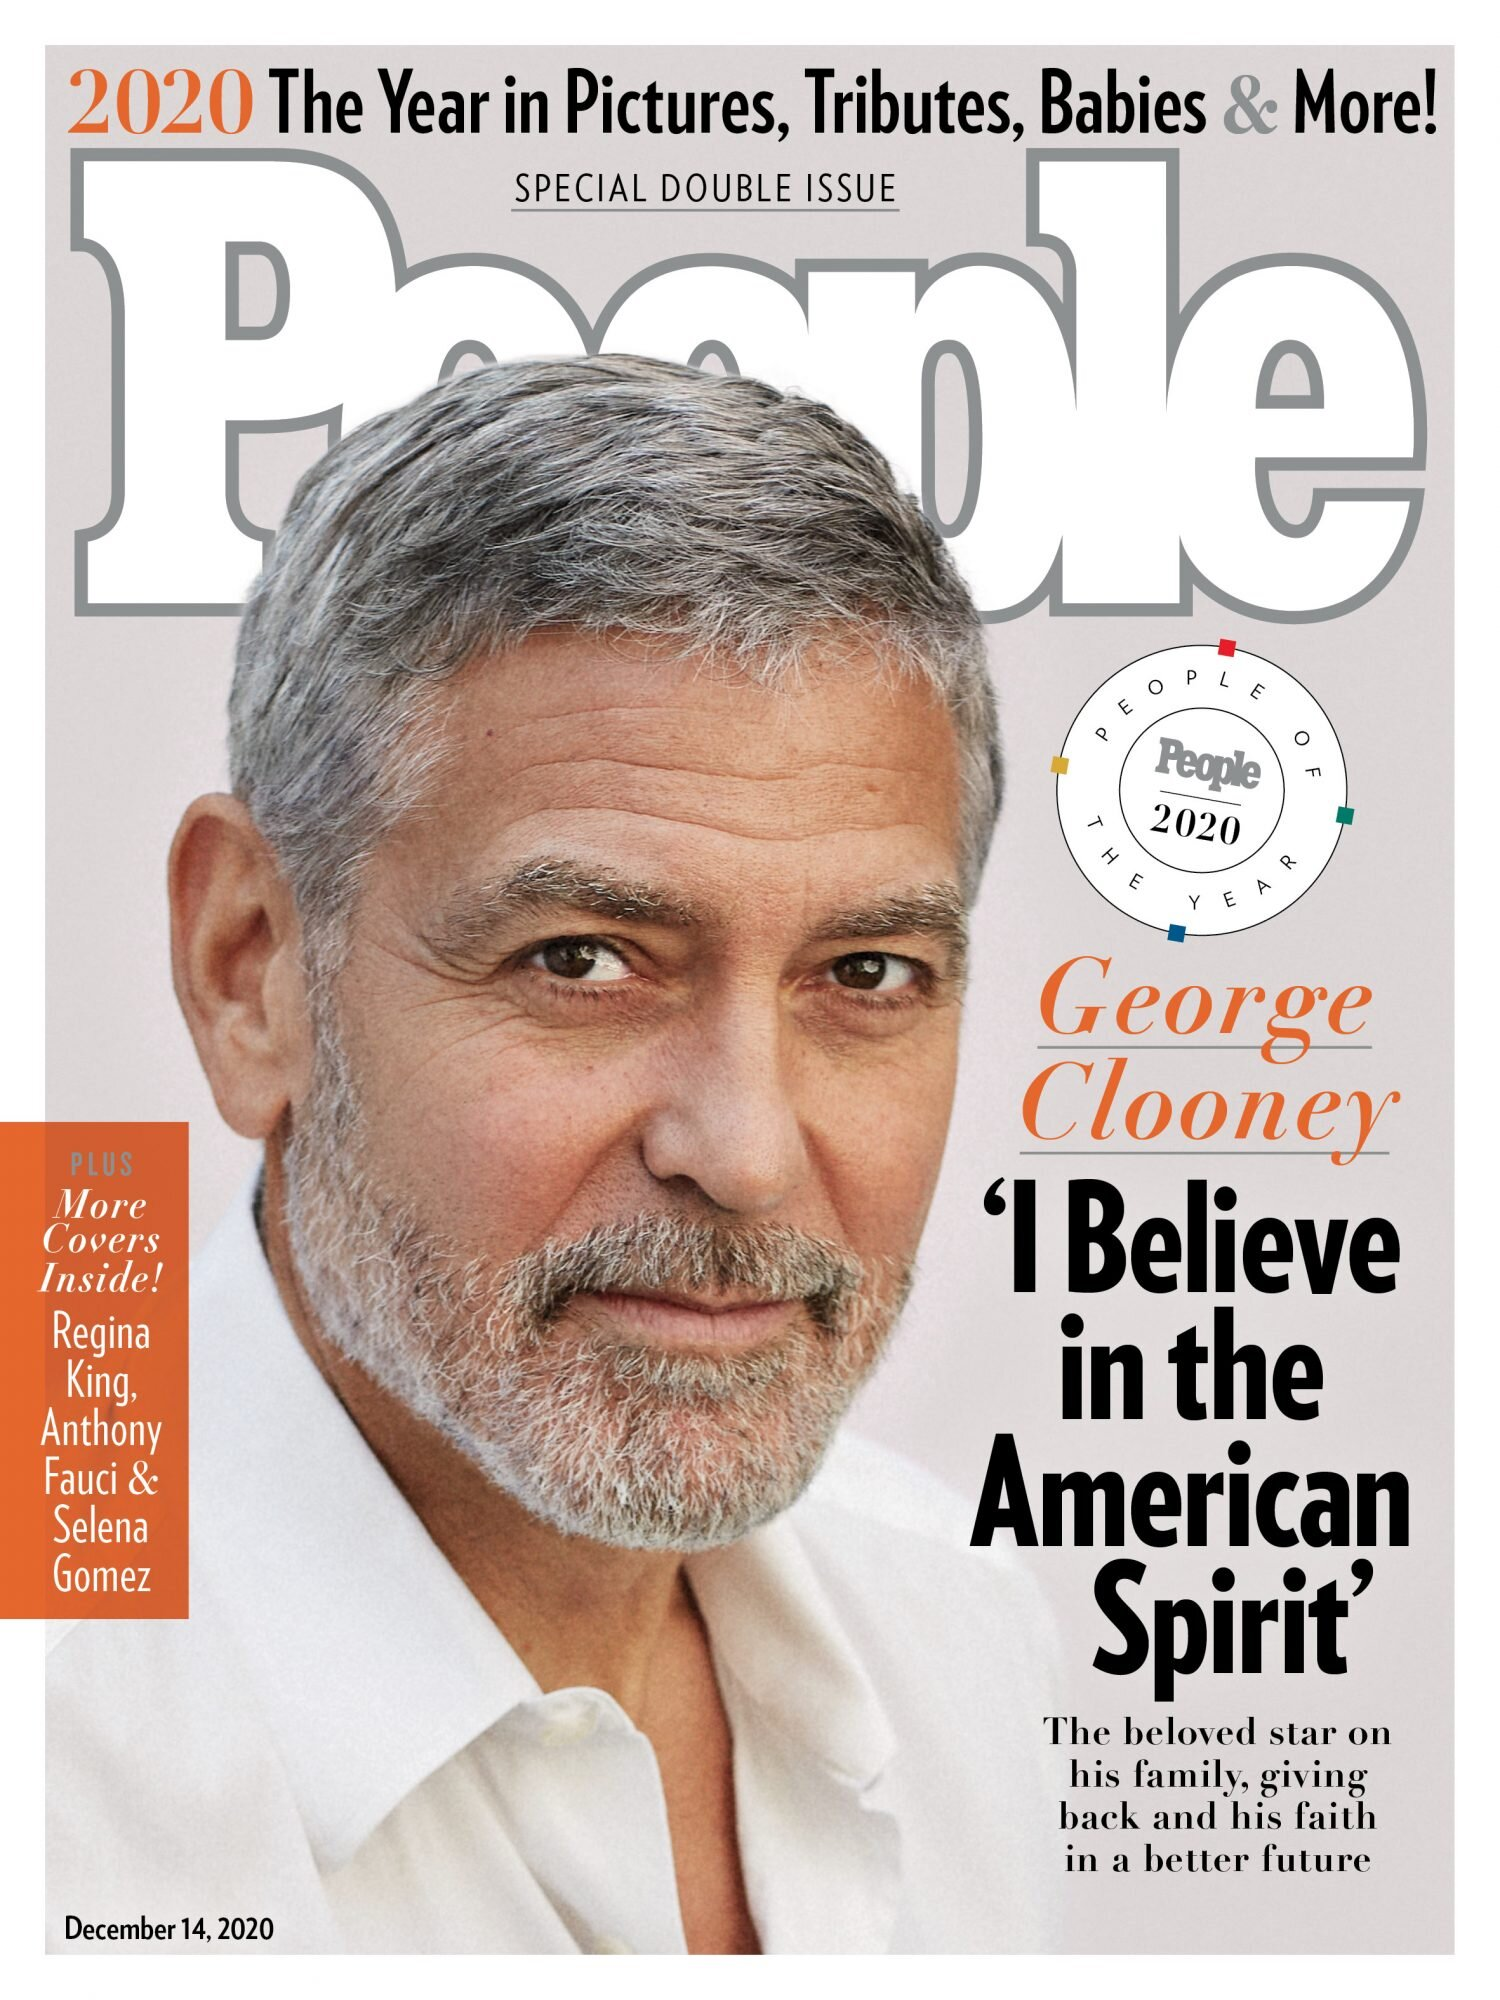 People magazine name George as one of their People of the Year Image?url=https%3A%2F%2Fstatic.onecms.io%2Fwp-content%2Fuploads%2Fsites%2F20%2F2020%2F12%2F01%2F12-14-cover-promo-4-1-2000